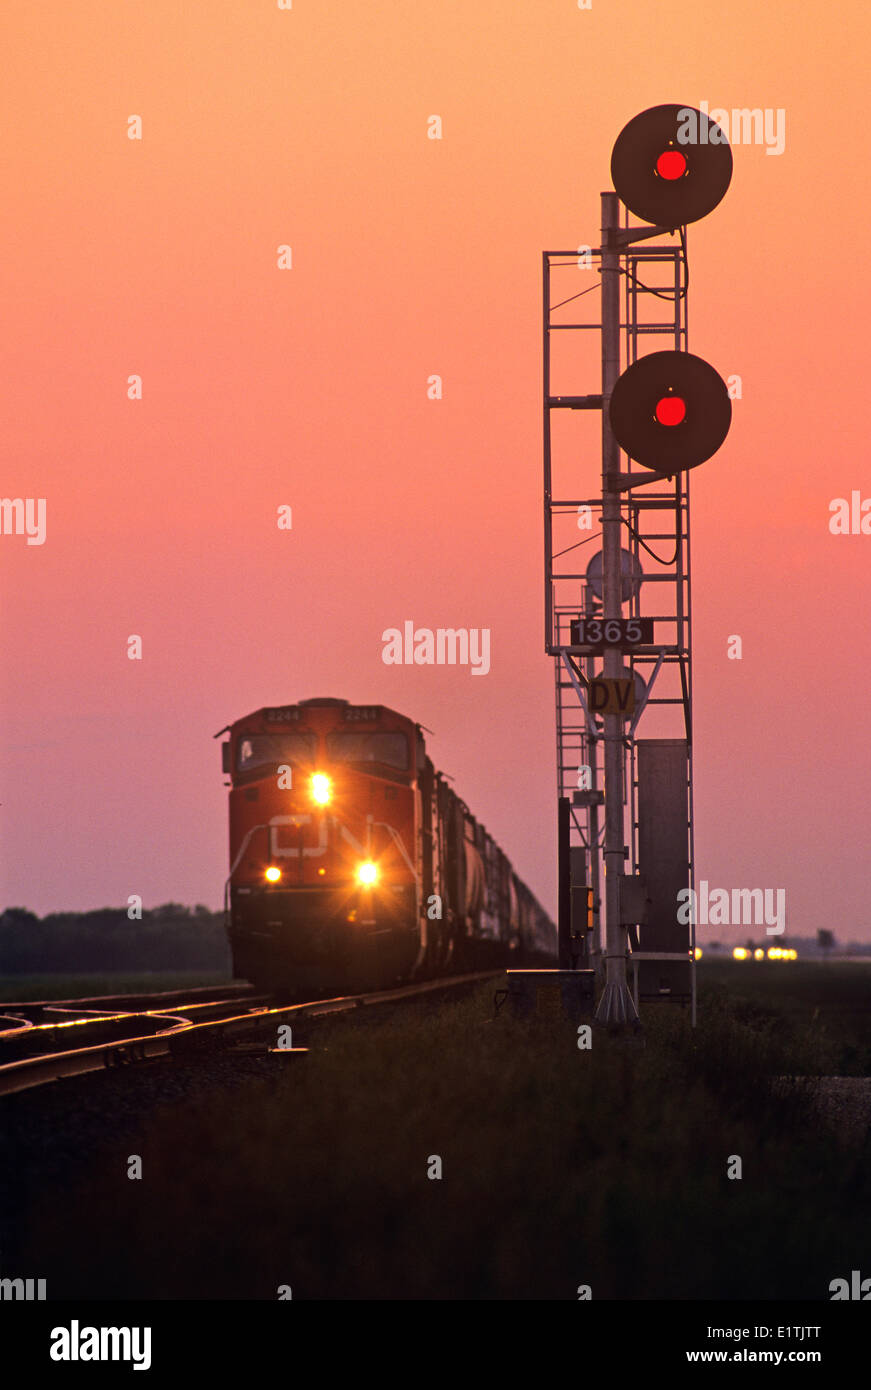 close up of rail signal with approaching train in the background, near Winnipeg, Manitoba, Canada - Stock Image